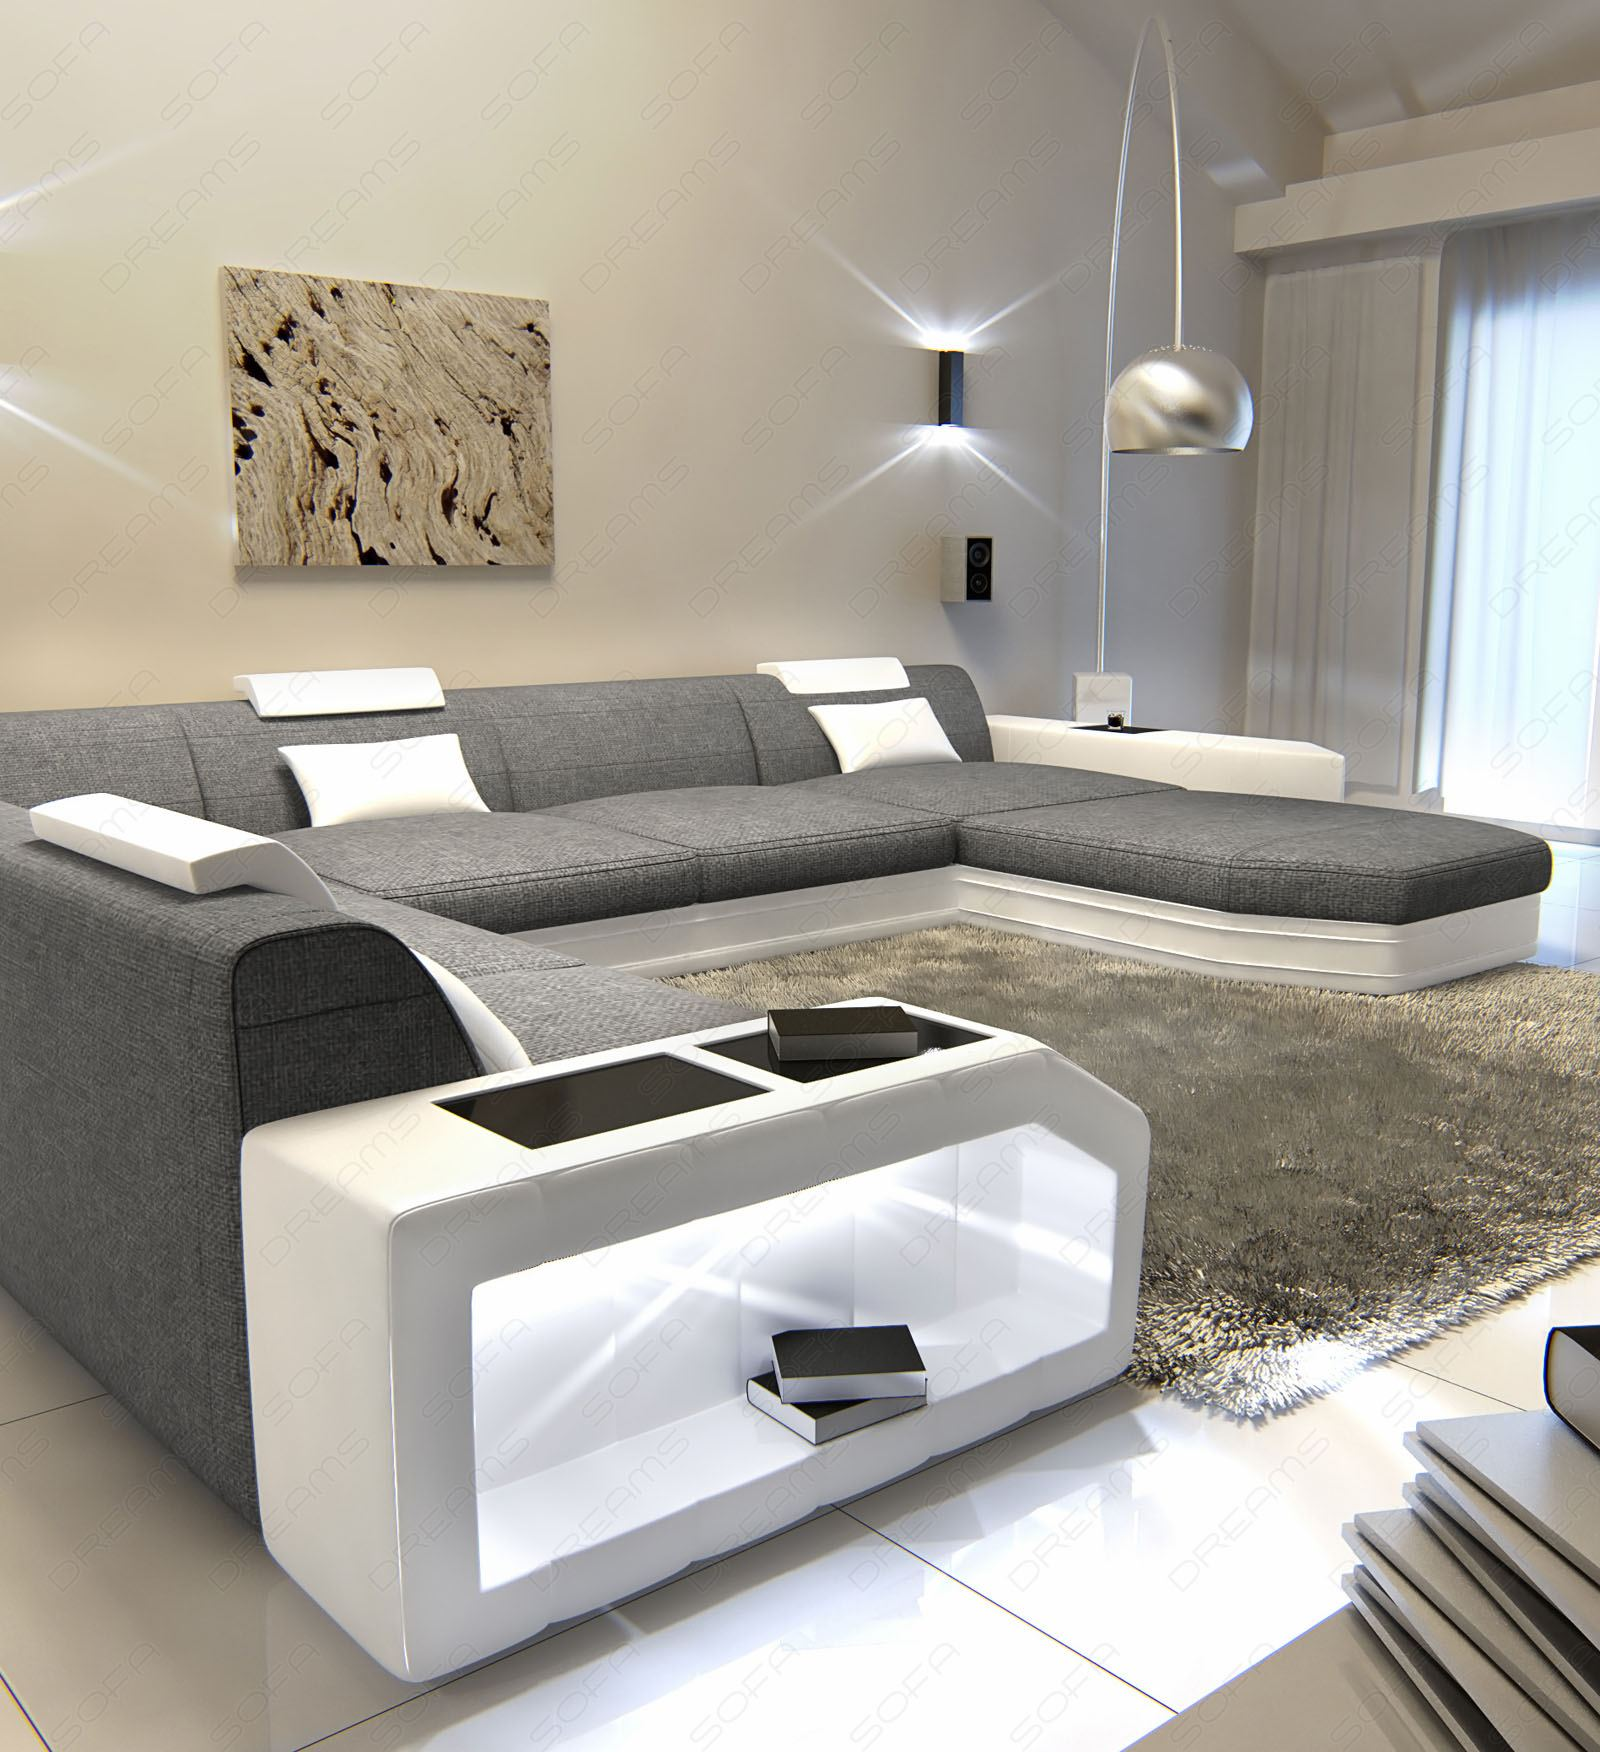 stoff wohnlandschaft polstersofa couch prato xxl led. Black Bedroom Furniture Sets. Home Design Ideas